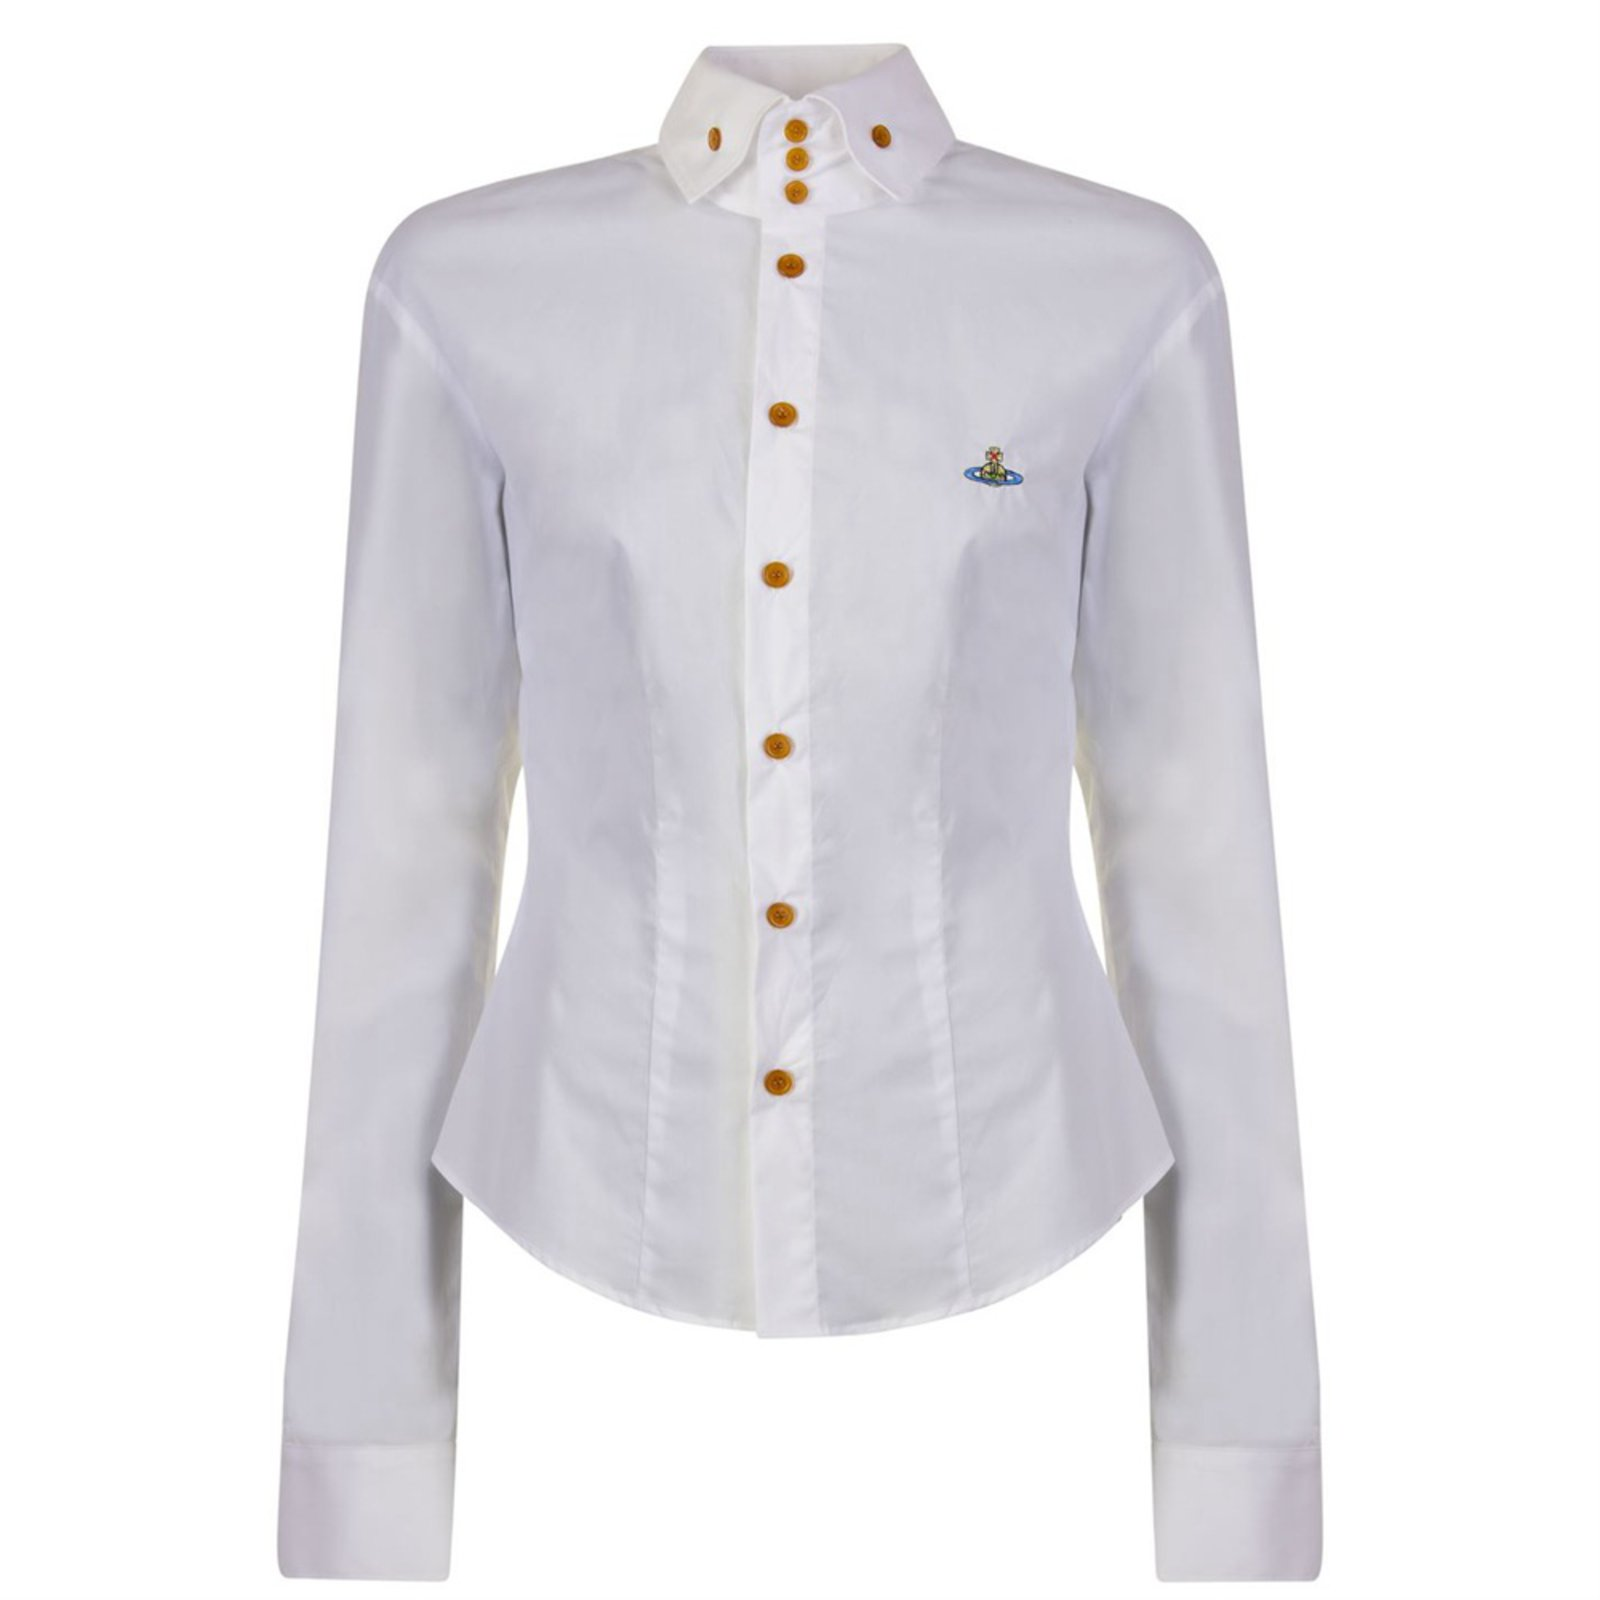 c4311de6d4 Vivienne Westwood Krall Orb shirt in white Tops Cotton,Elastane White  ref.109200